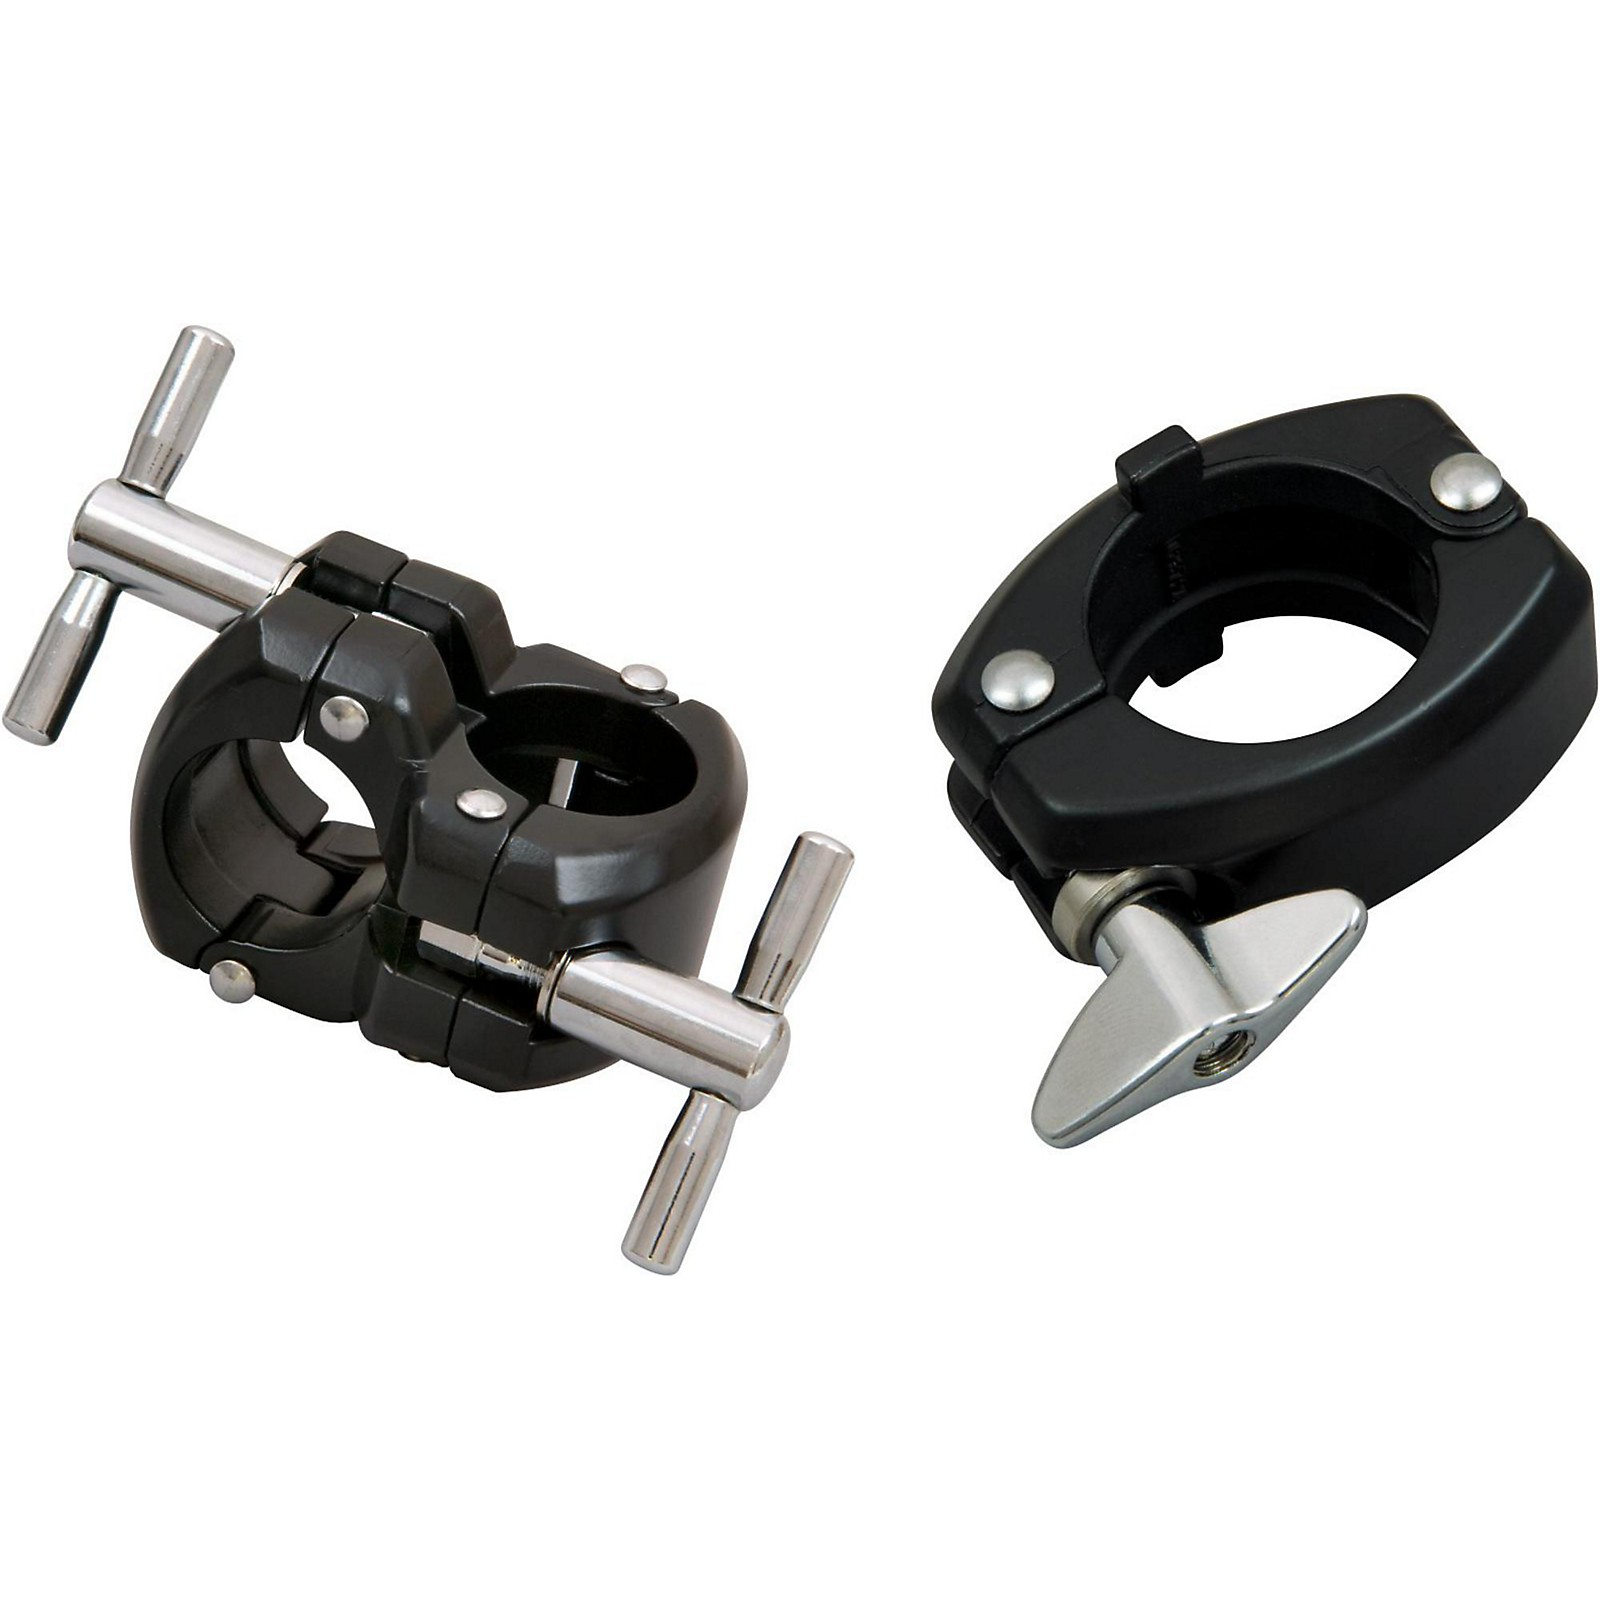 Sound Percussion Labs Right-Angle Mount Clamp with Memory Lock